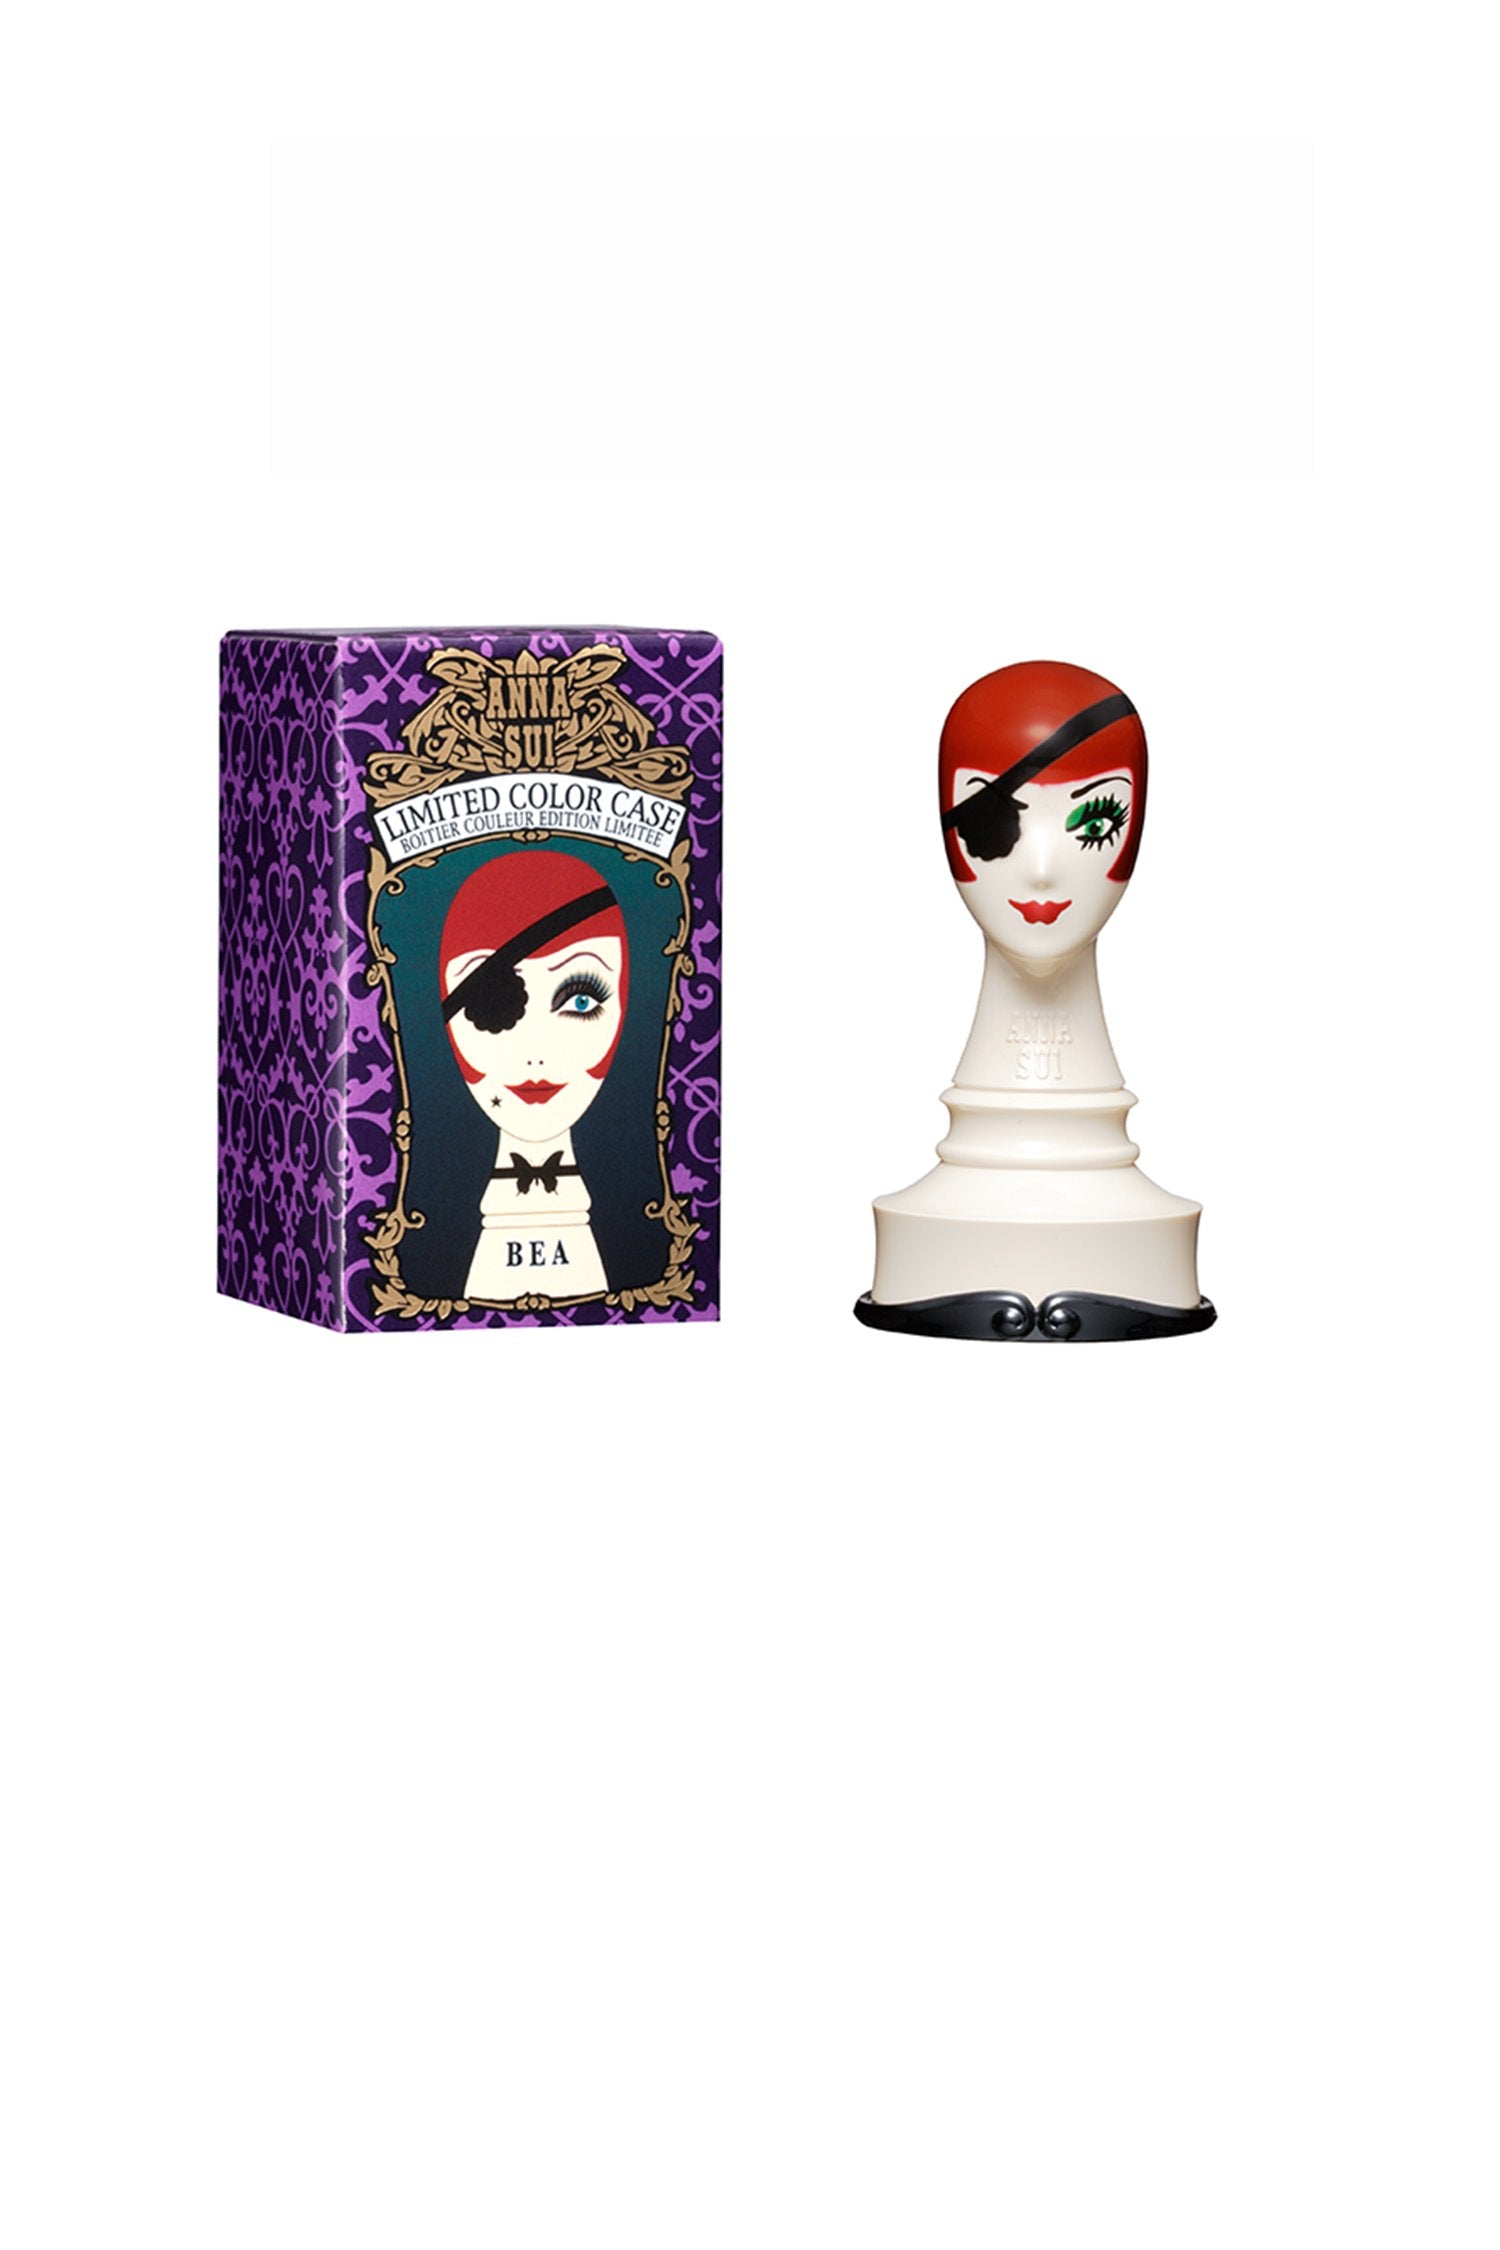 New: Limited Edition Dolly Head Color Case